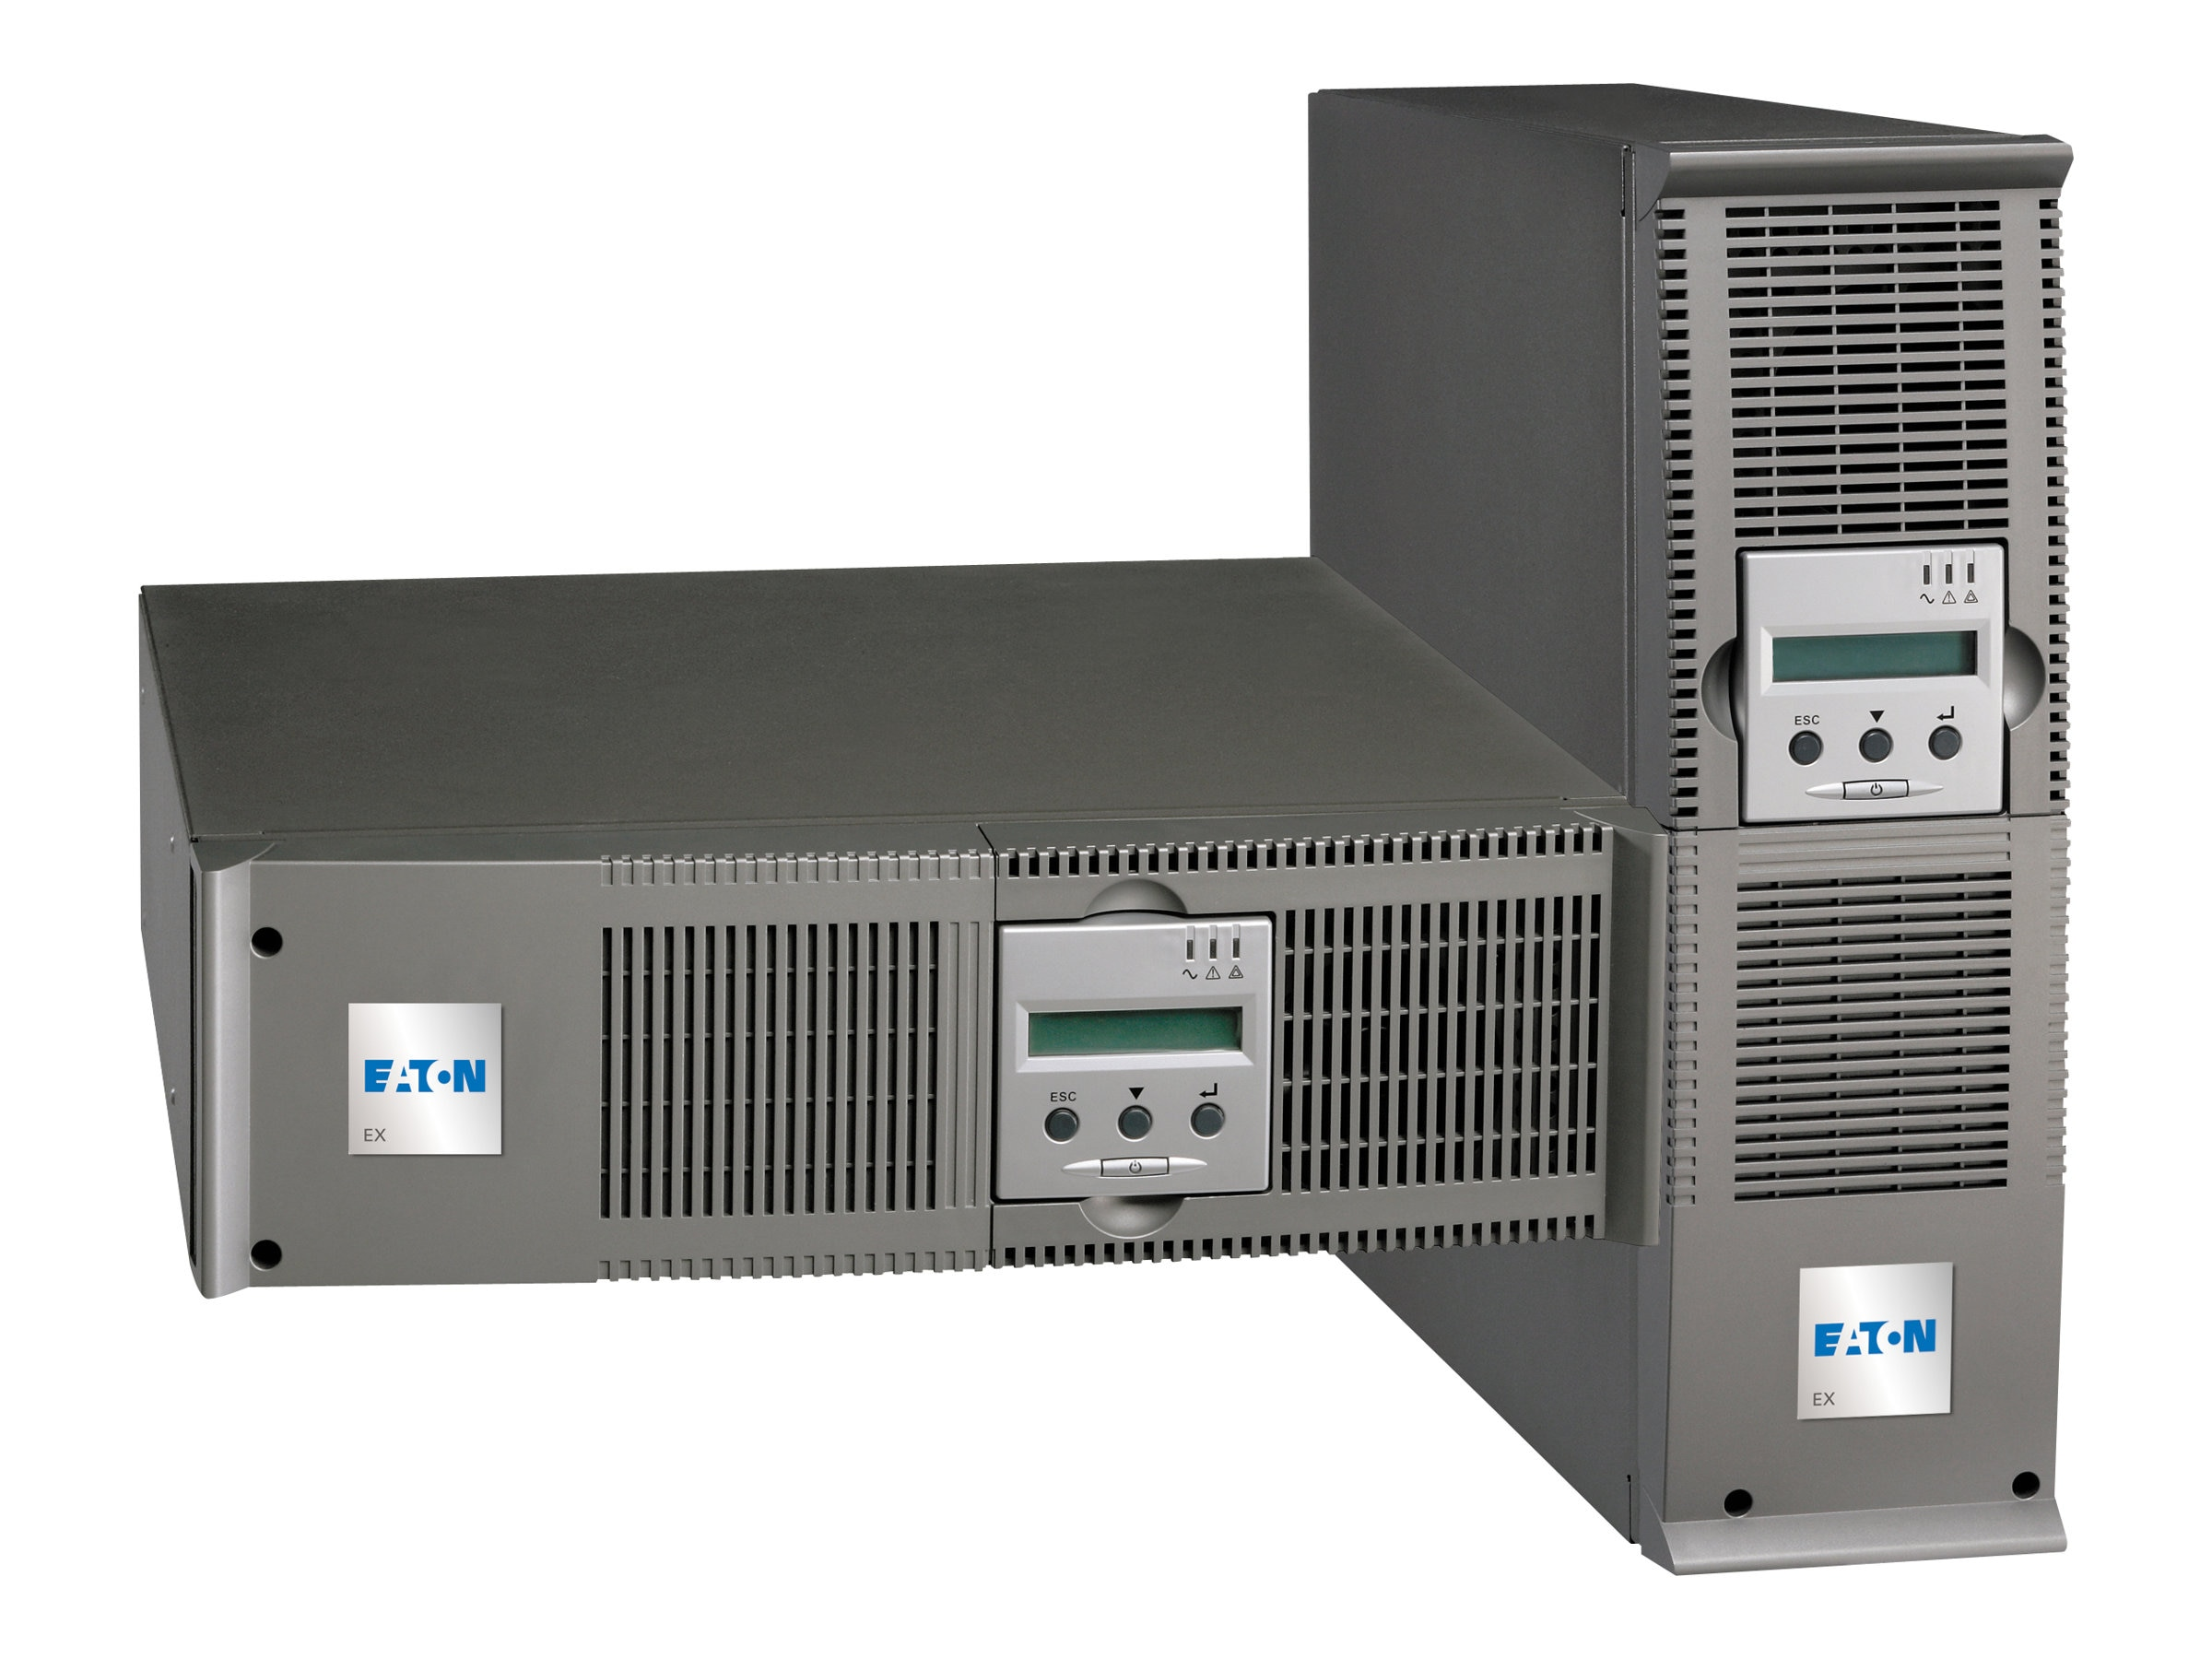 Eaton Pulsar M 2200VA 1980W 3U Rackmount Tower Online 230V Output, 68400, 7507251, Battery Backup/UPS